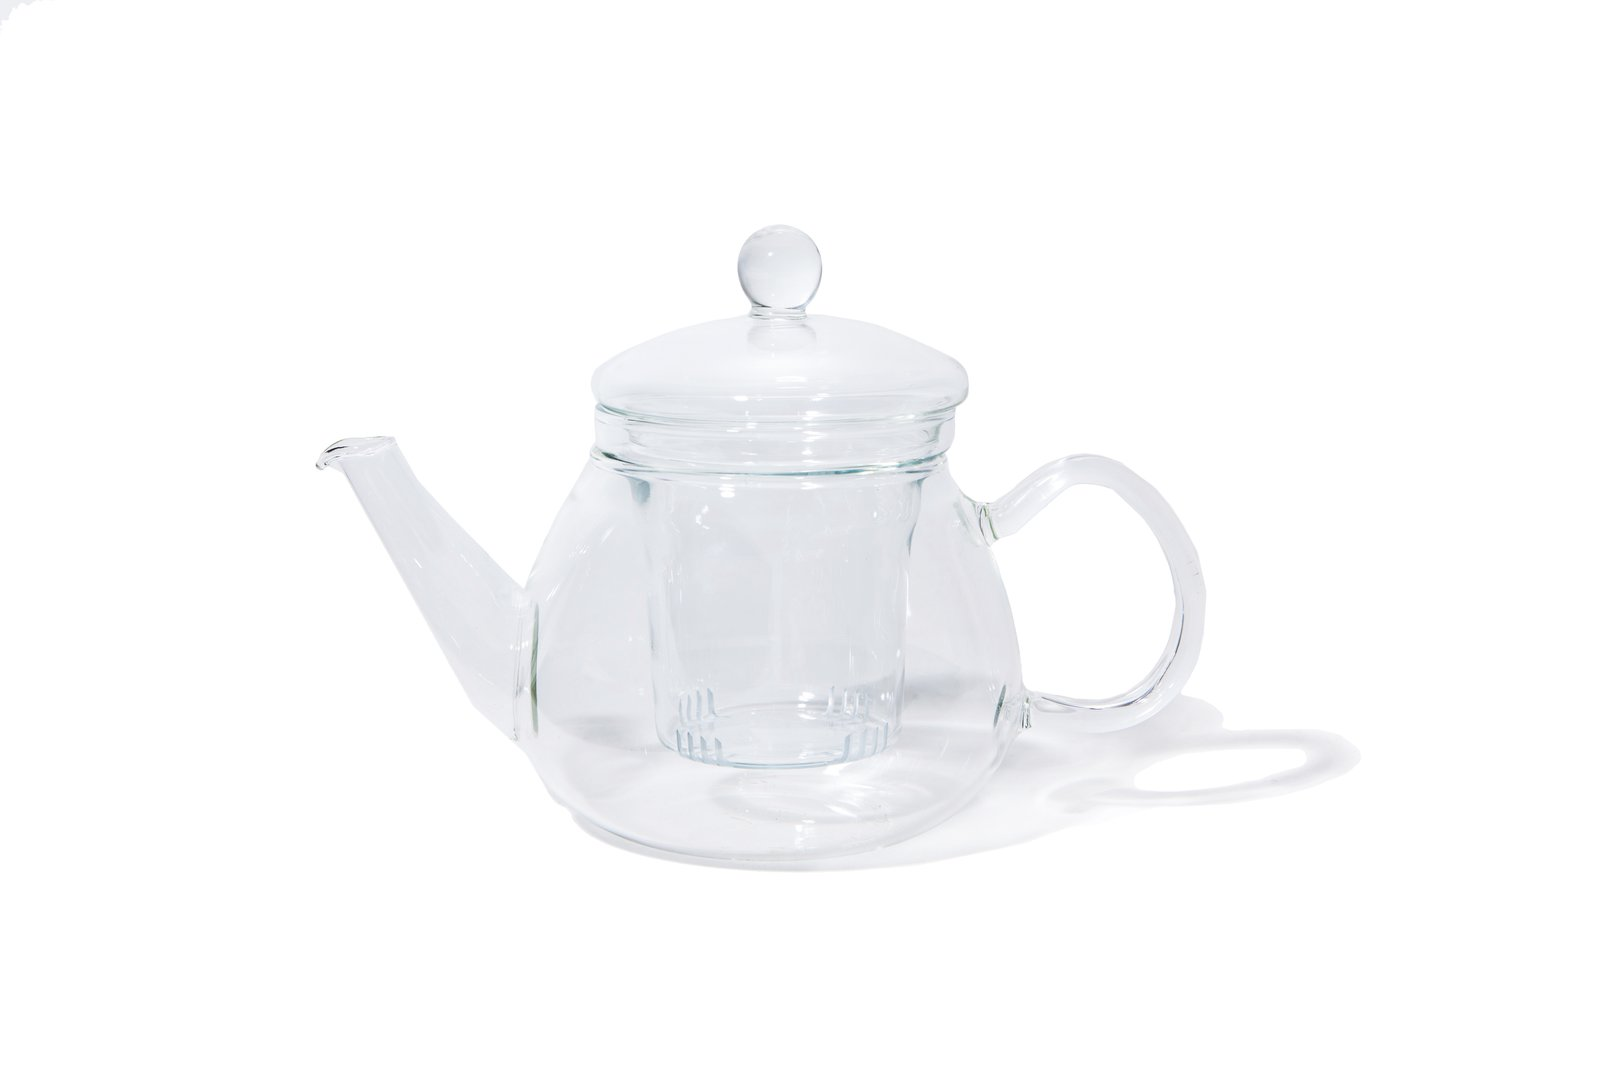 Heat-Resistant Glass Teapot  Photo 11 of 14 in Found MUJI Celebrates German Craftsmanship With a New Collection of Useful Objects